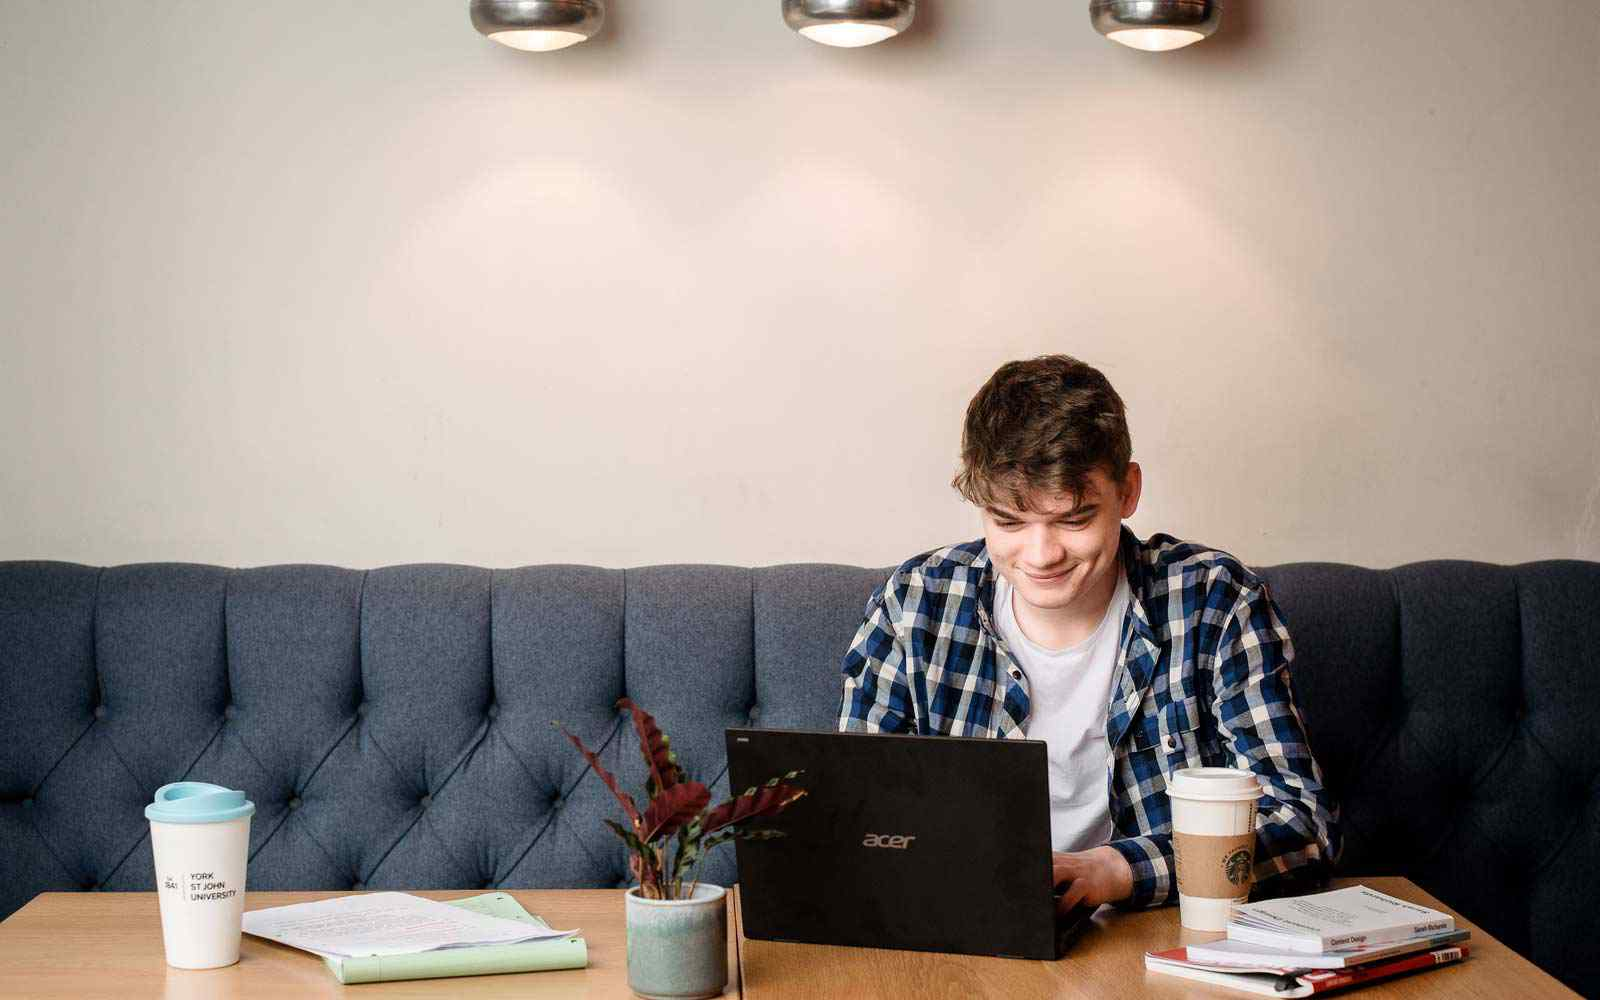 Student sitting and working at a laptop.